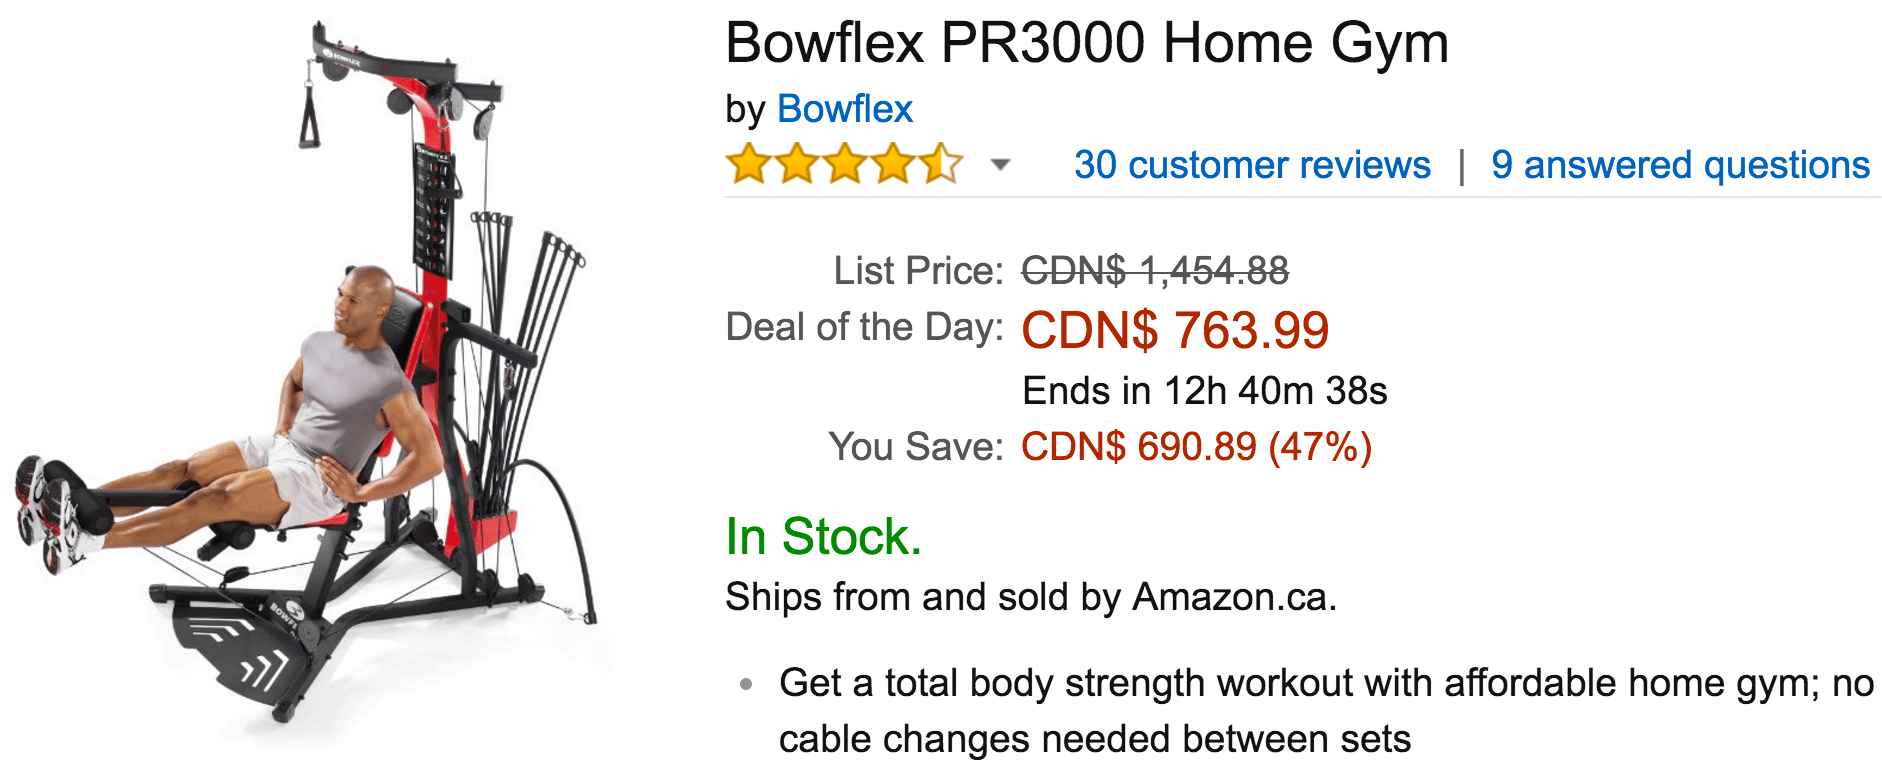 Shop with Bowflex Treadclimber Promo Code, Save with Valuecom.com